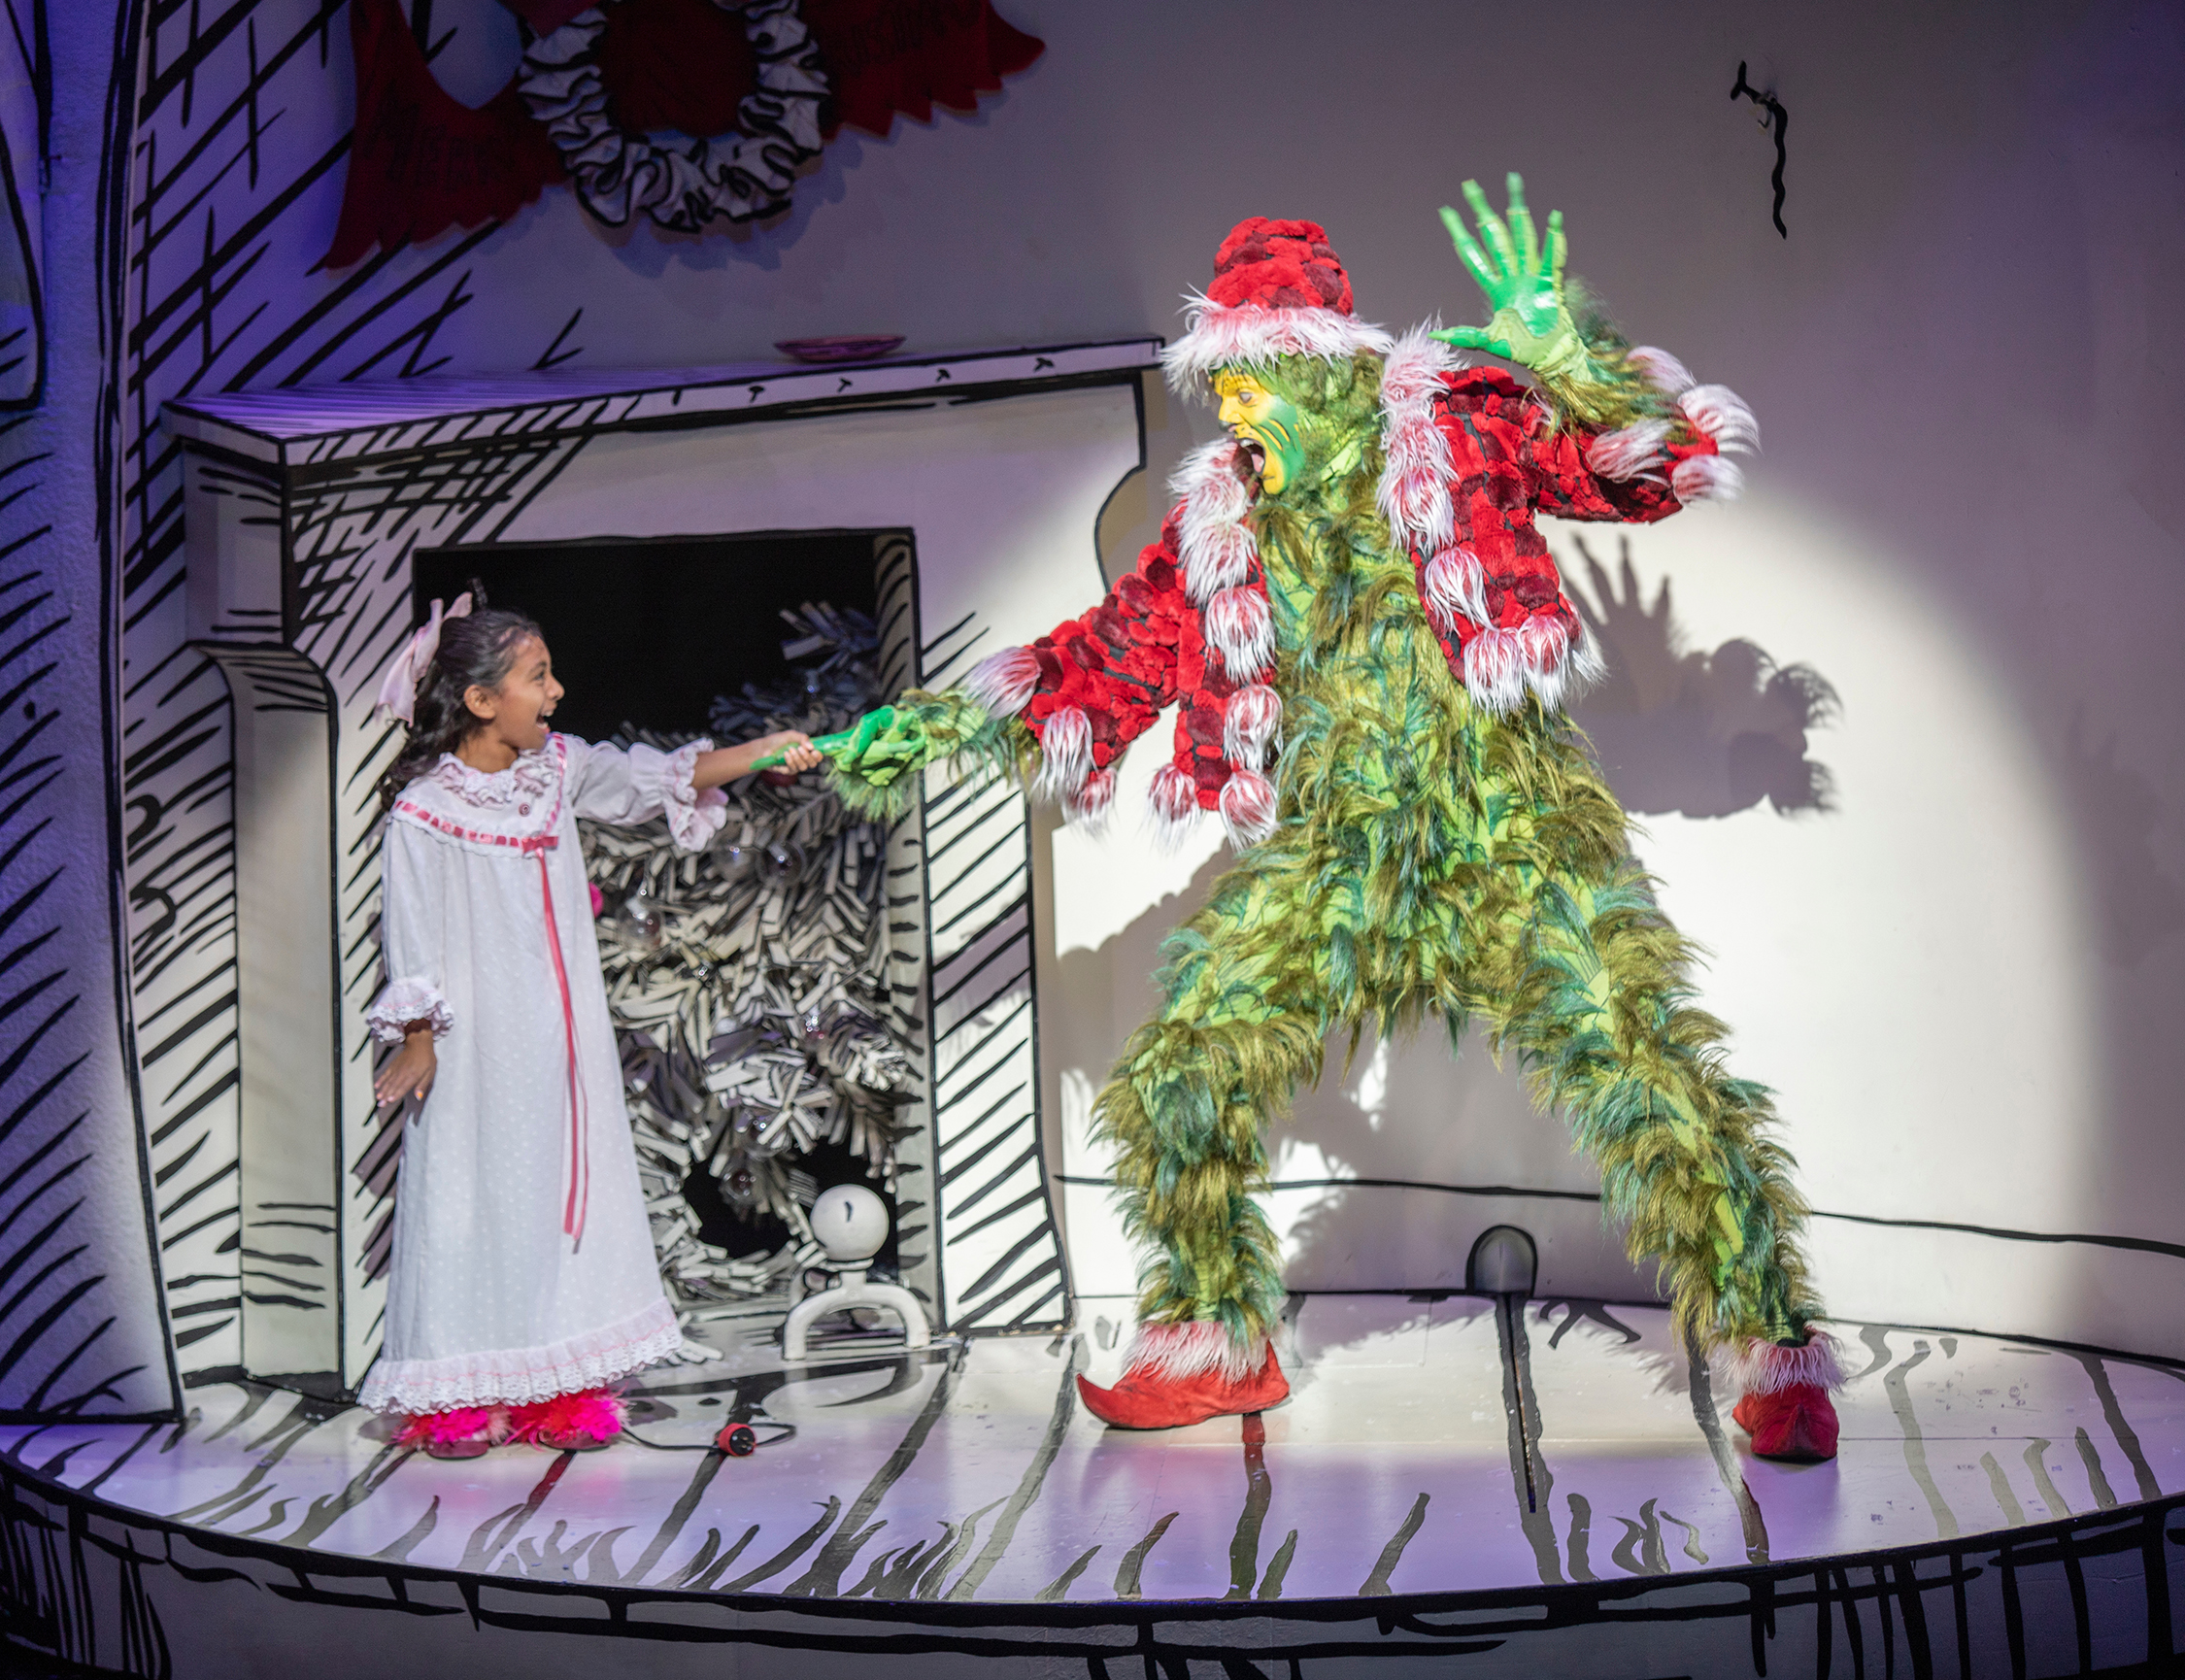 How The Grinch Stole Christmas Auditions 2020 Dr. Seuss's How the Grinch Stole Christmas! 2019 | The Old Globe